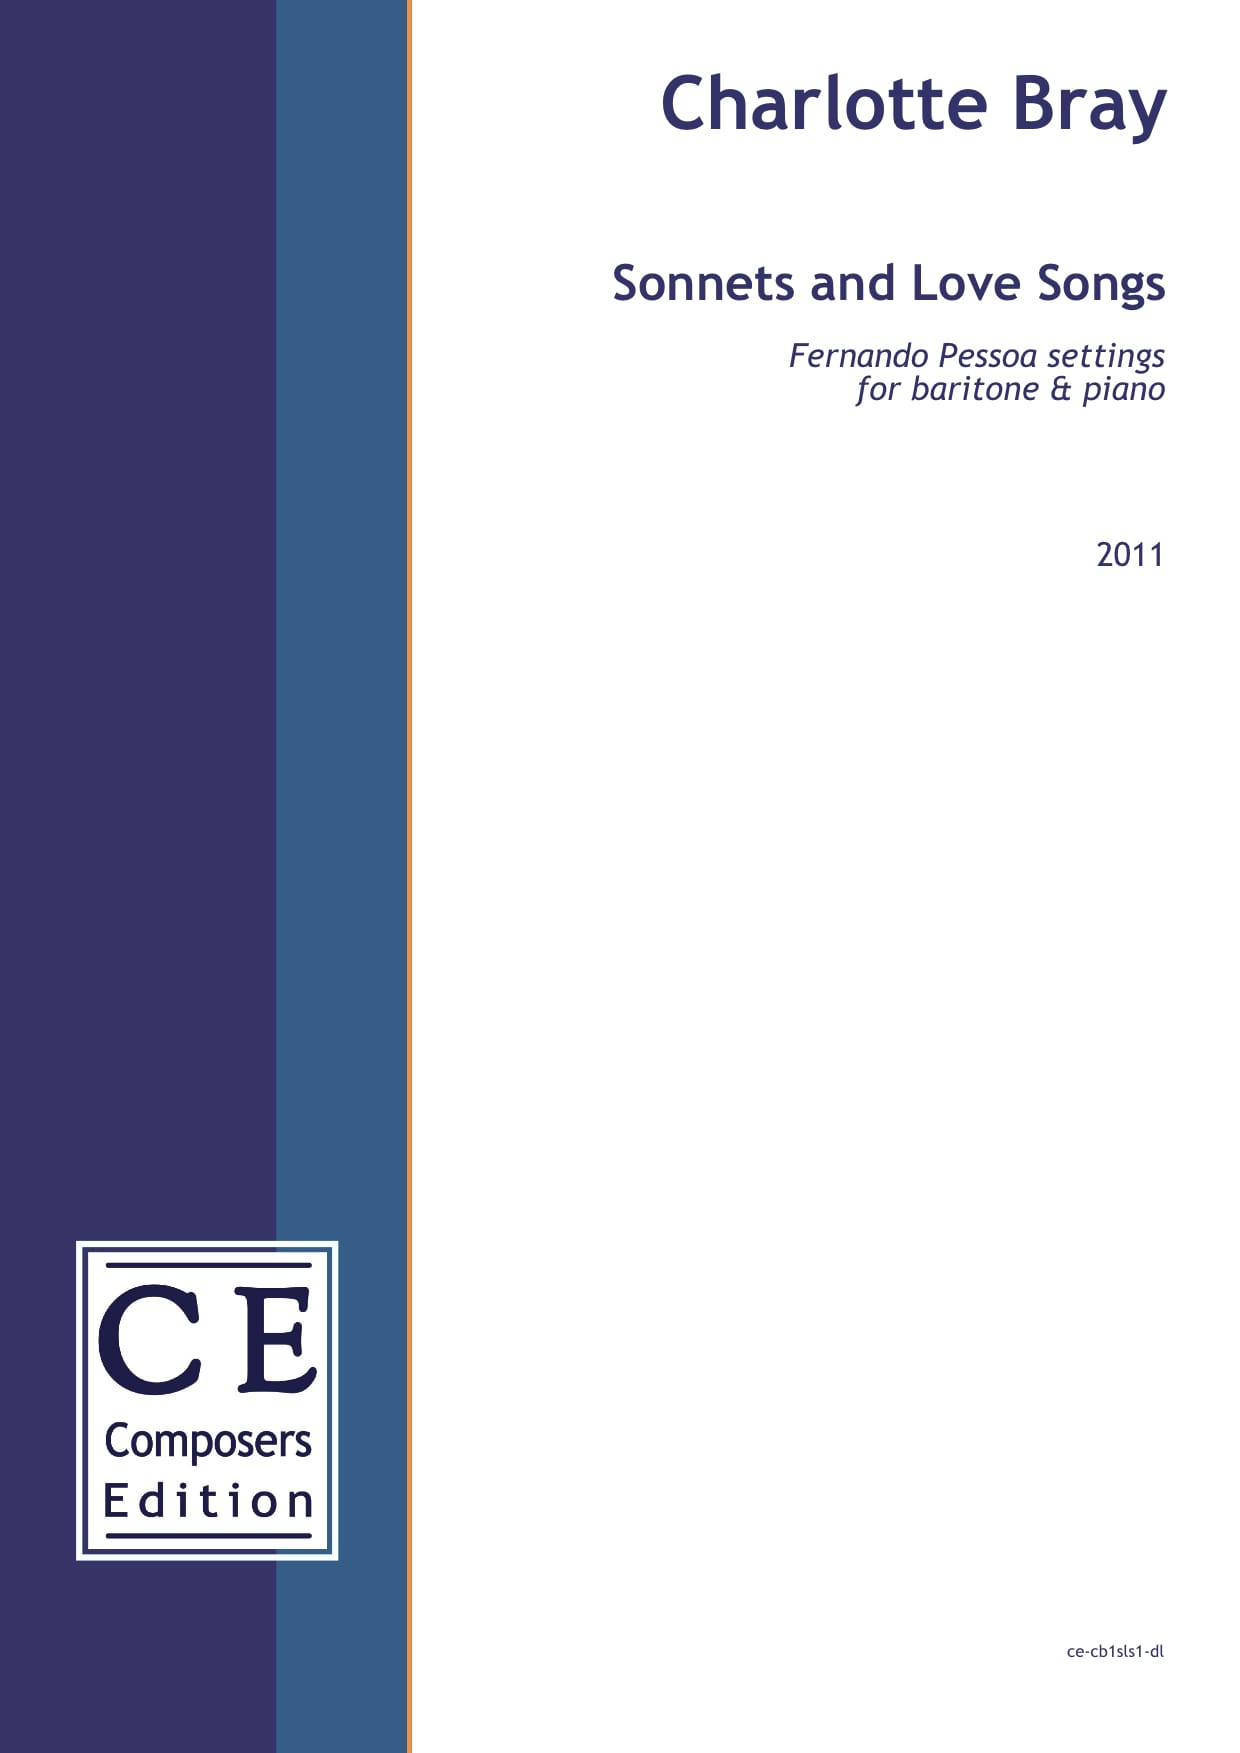 Charlotte Bray: Sonnets and Love Songs for baritone & piano